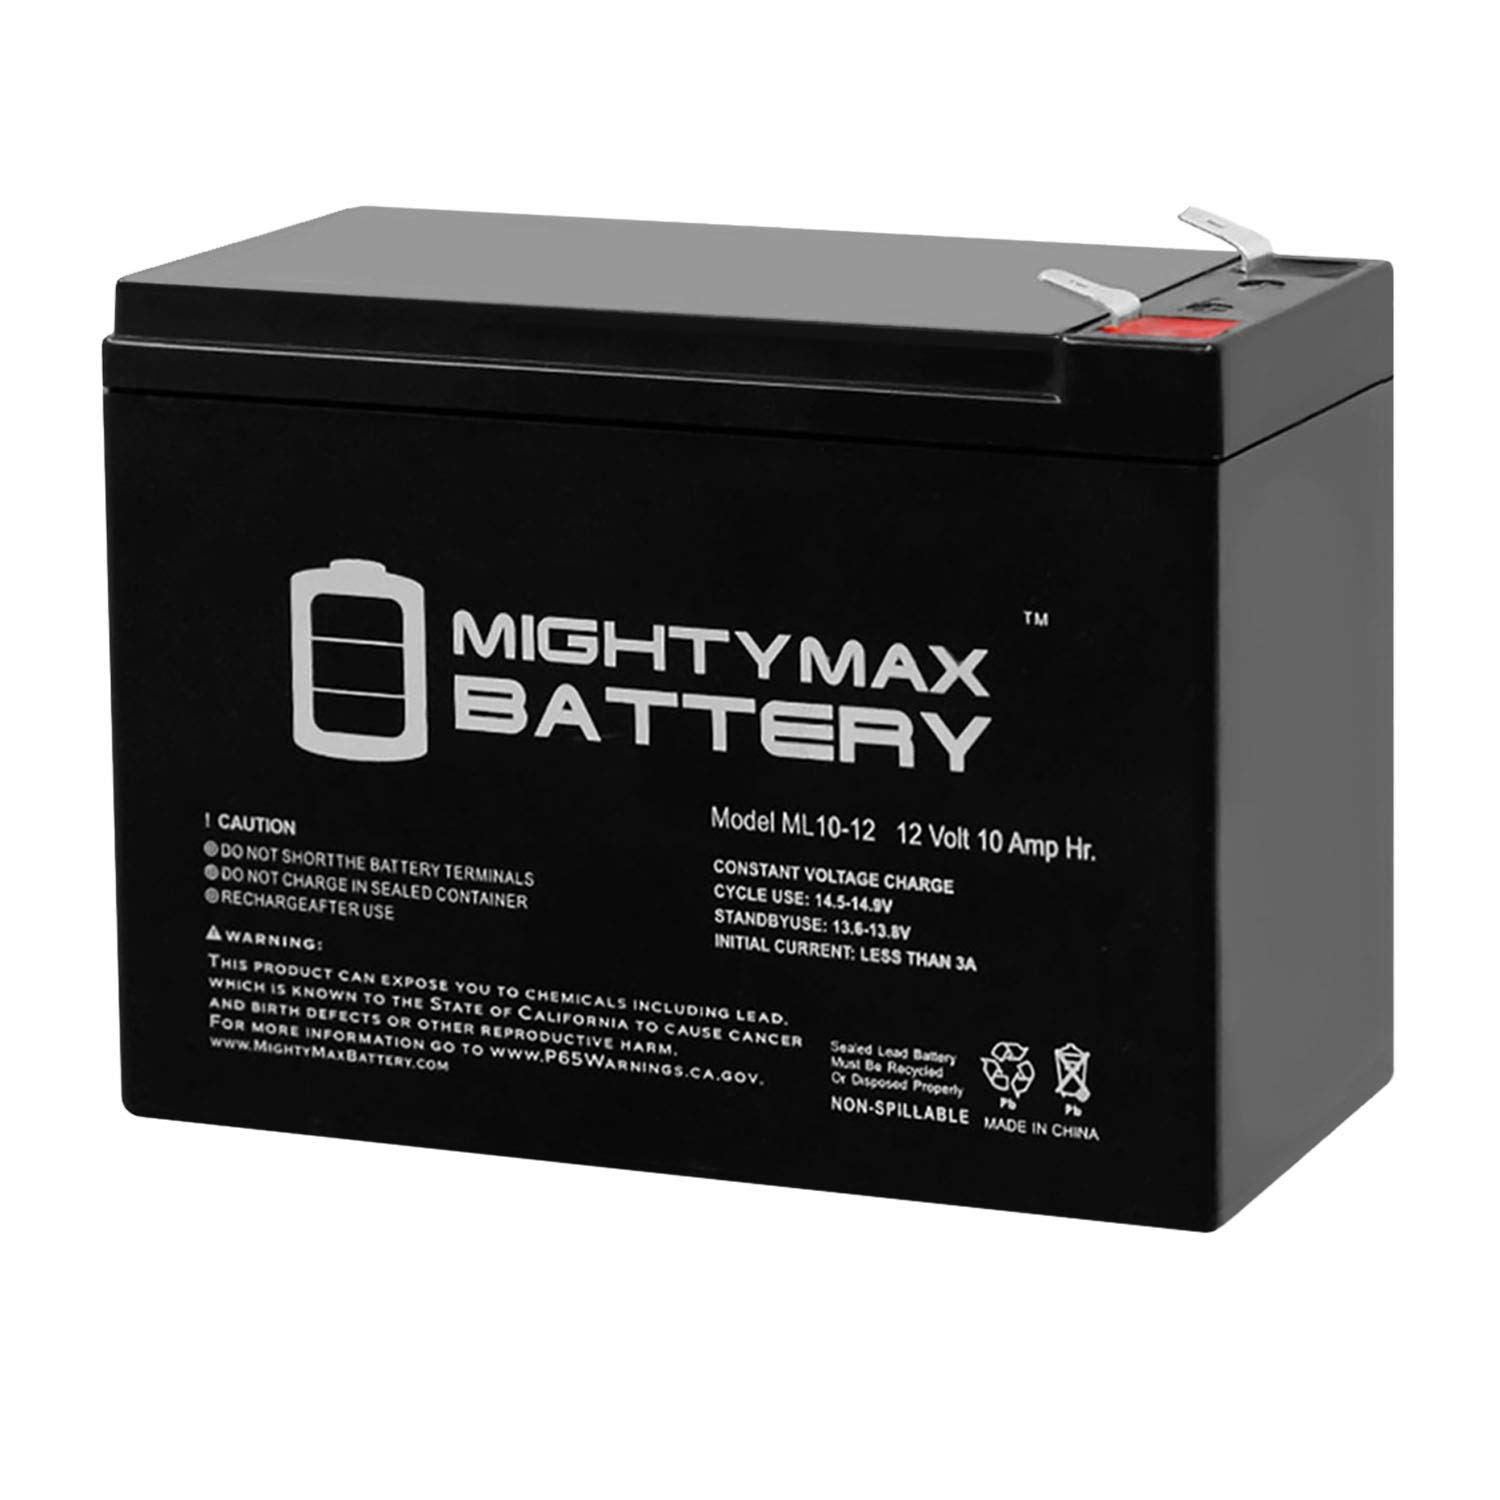 Mighty Max Battery 12V 10AH Battery Replaces PS10-12, PS1012, MK ES10-12S + 12V Charger Brand Product